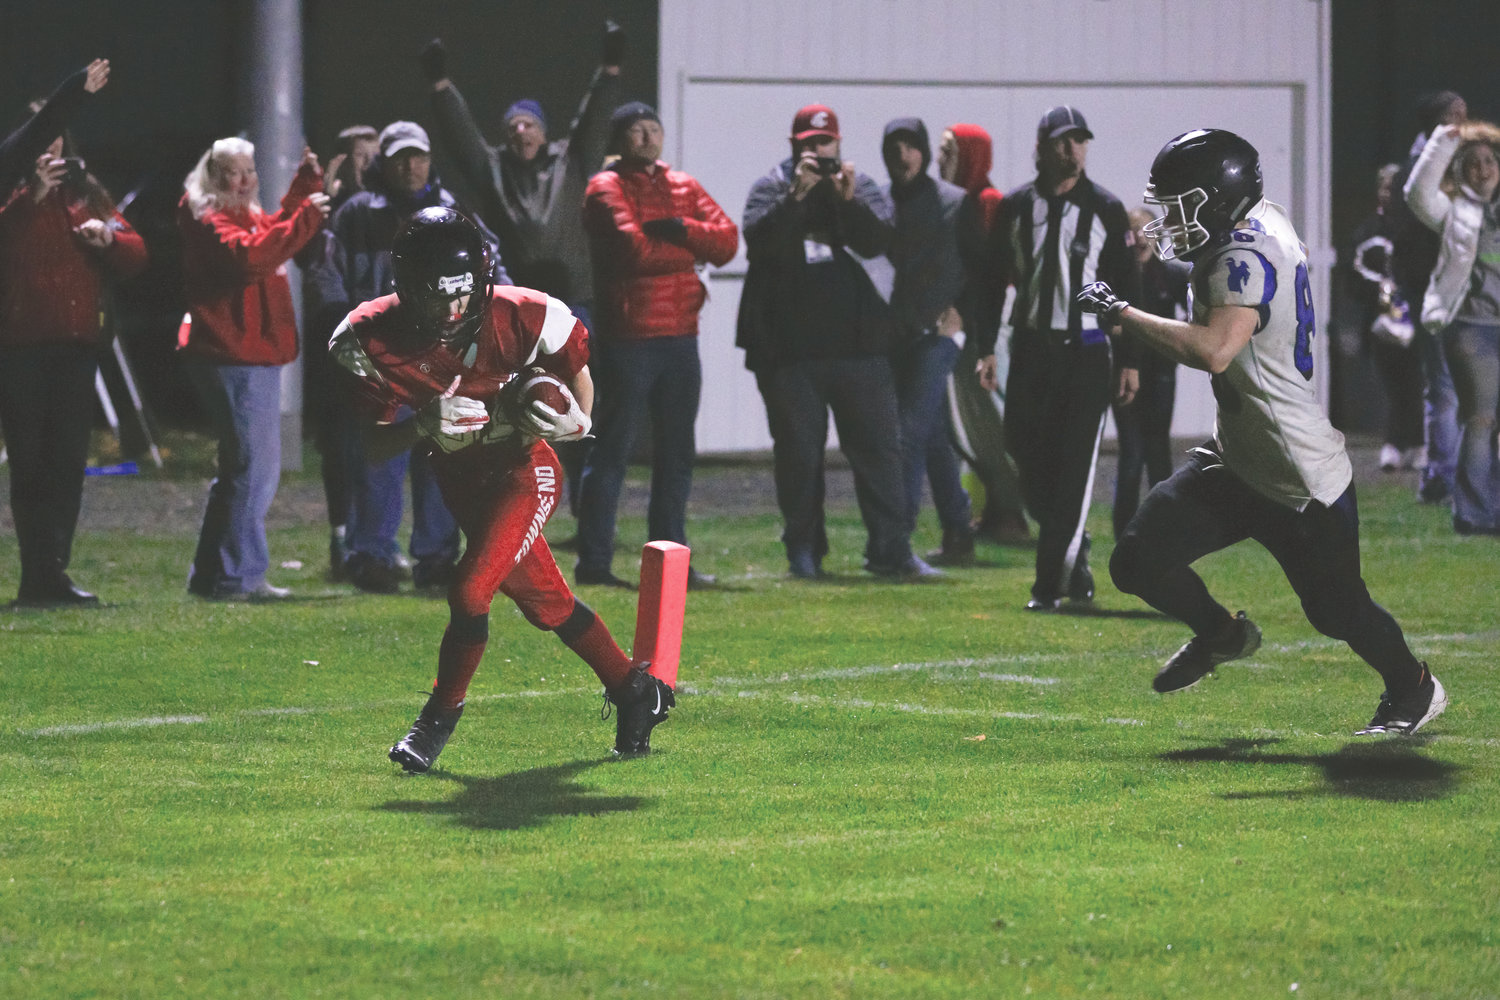 After catching the pass on a short slant route, Redhawk wide receiver Joshua Davis dances his way into the endzone for the win.